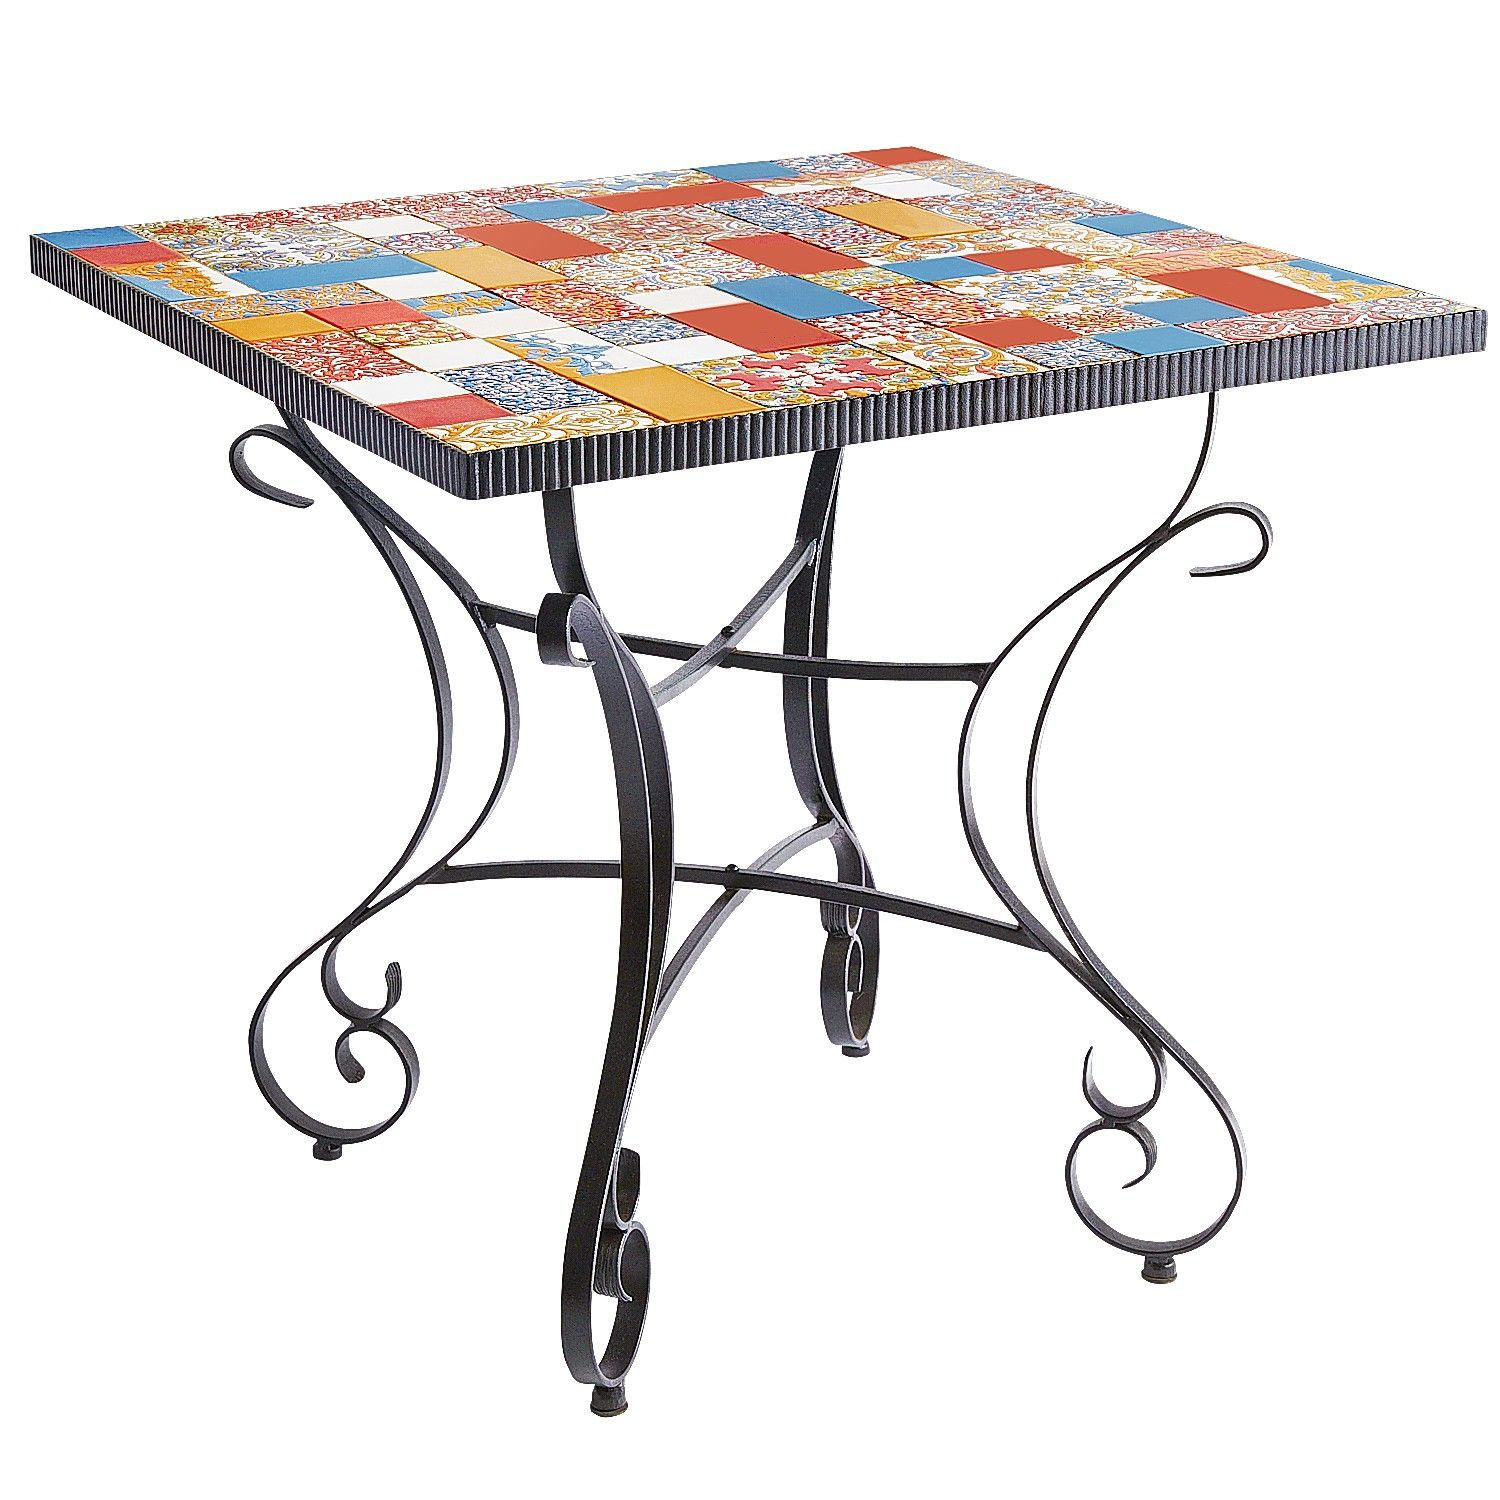 Multi Colored Caspian Mosaic Square Dining Table   Wrought Iron   Outdoor